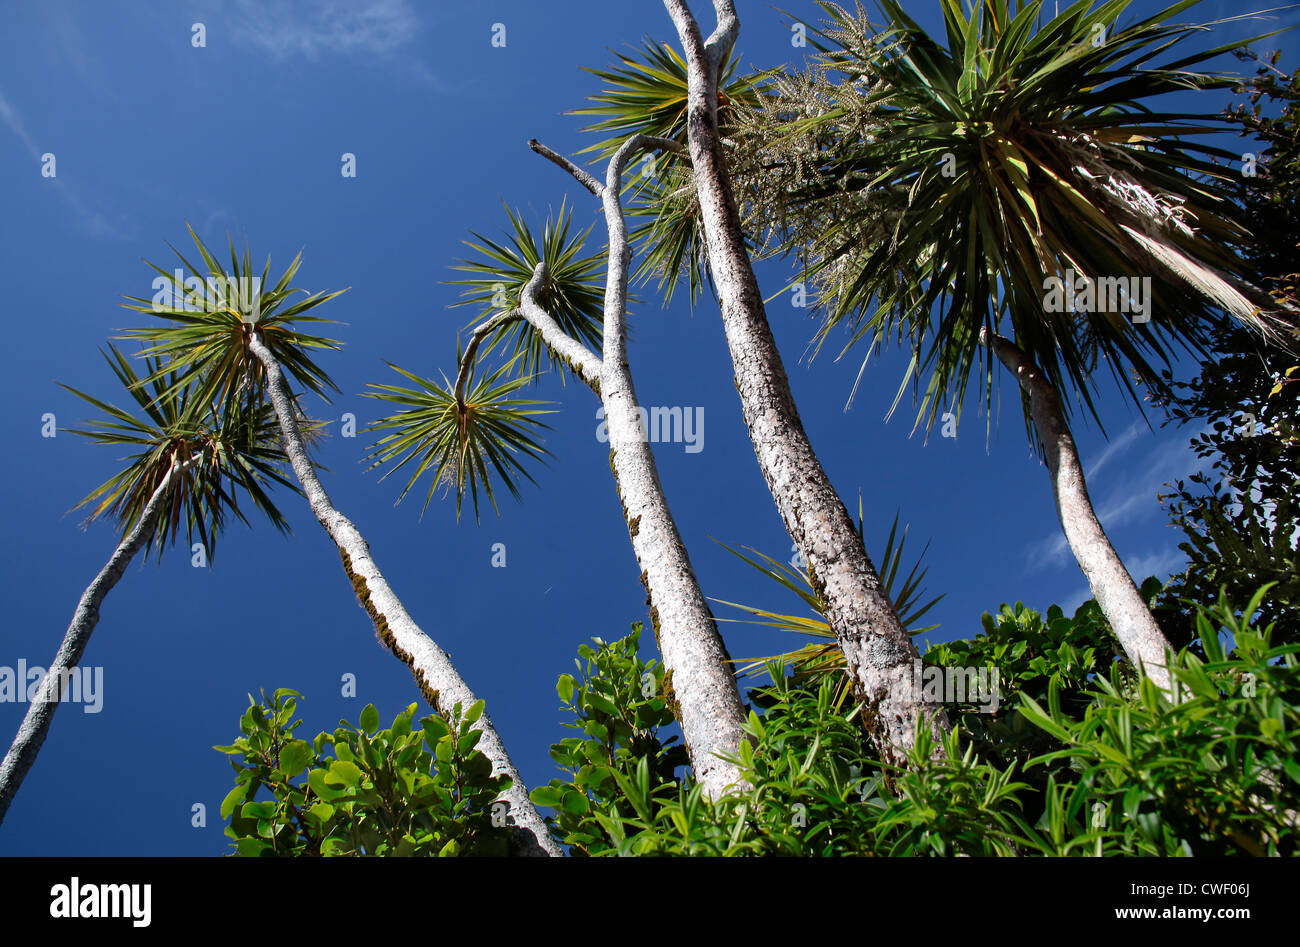 new zealand palm tree stock photos new zealand palm tree stock images alamy. Black Bedroom Furniture Sets. Home Design Ideas